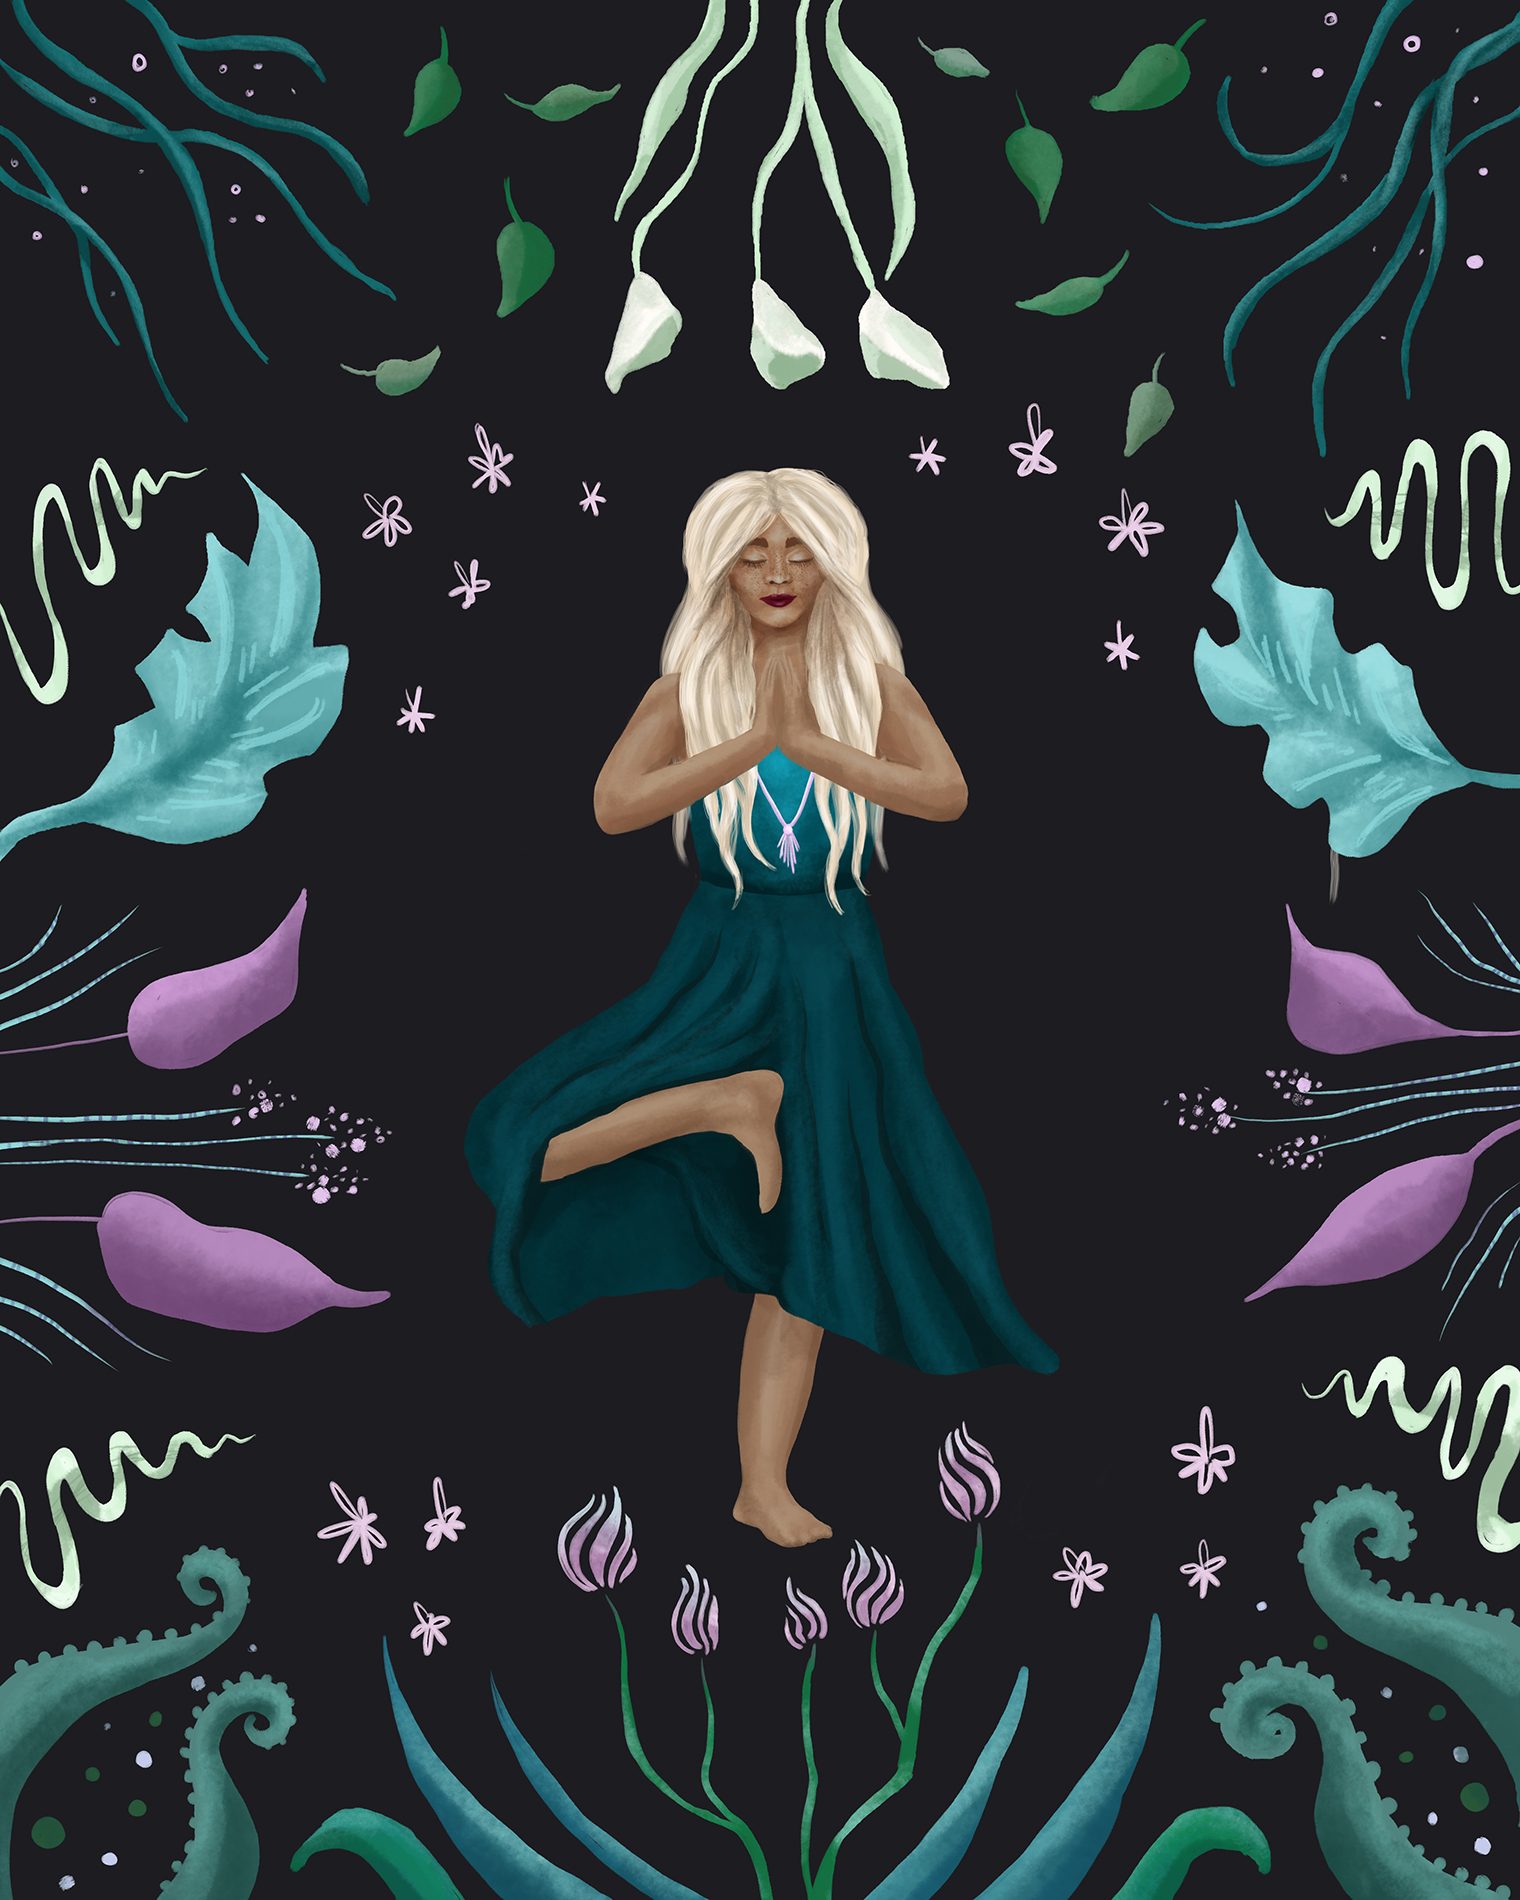 A spring yoga illustration with botanical plants to show the cyclical nature of life.